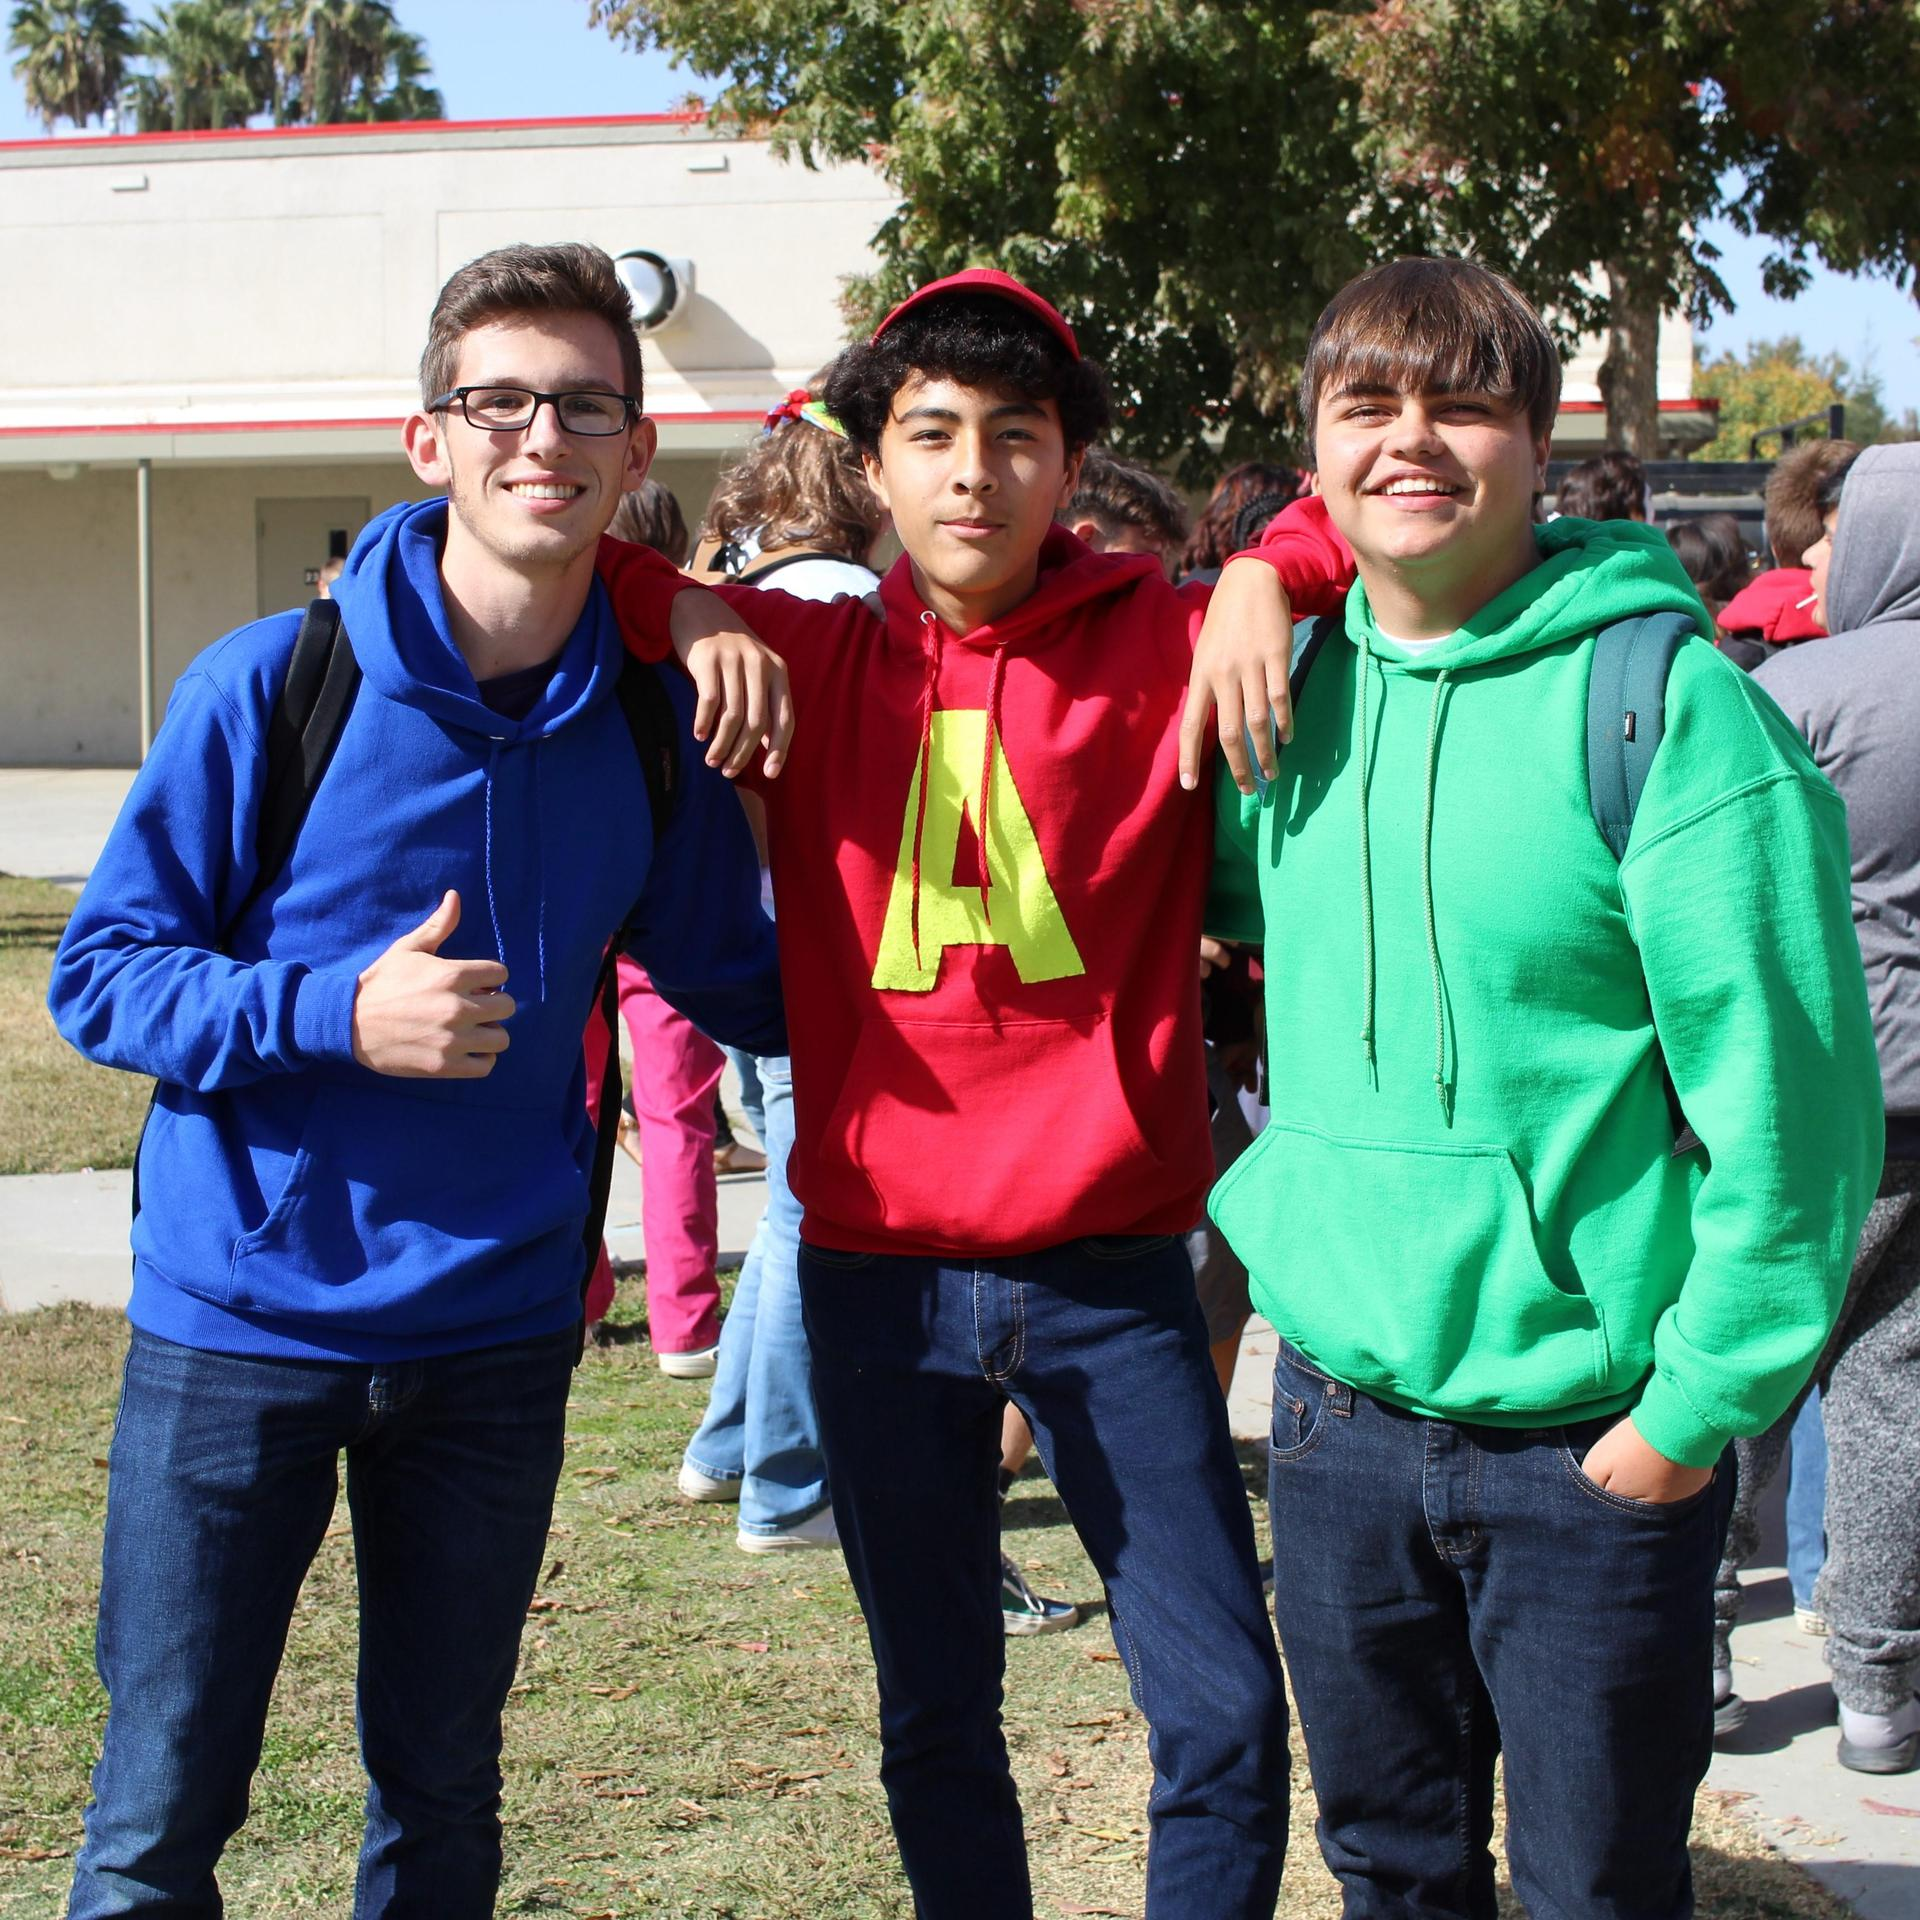 Dylan Shambaugh, Nicolas Lopez and Bradley Hobart as Alvin and the Chipmunks